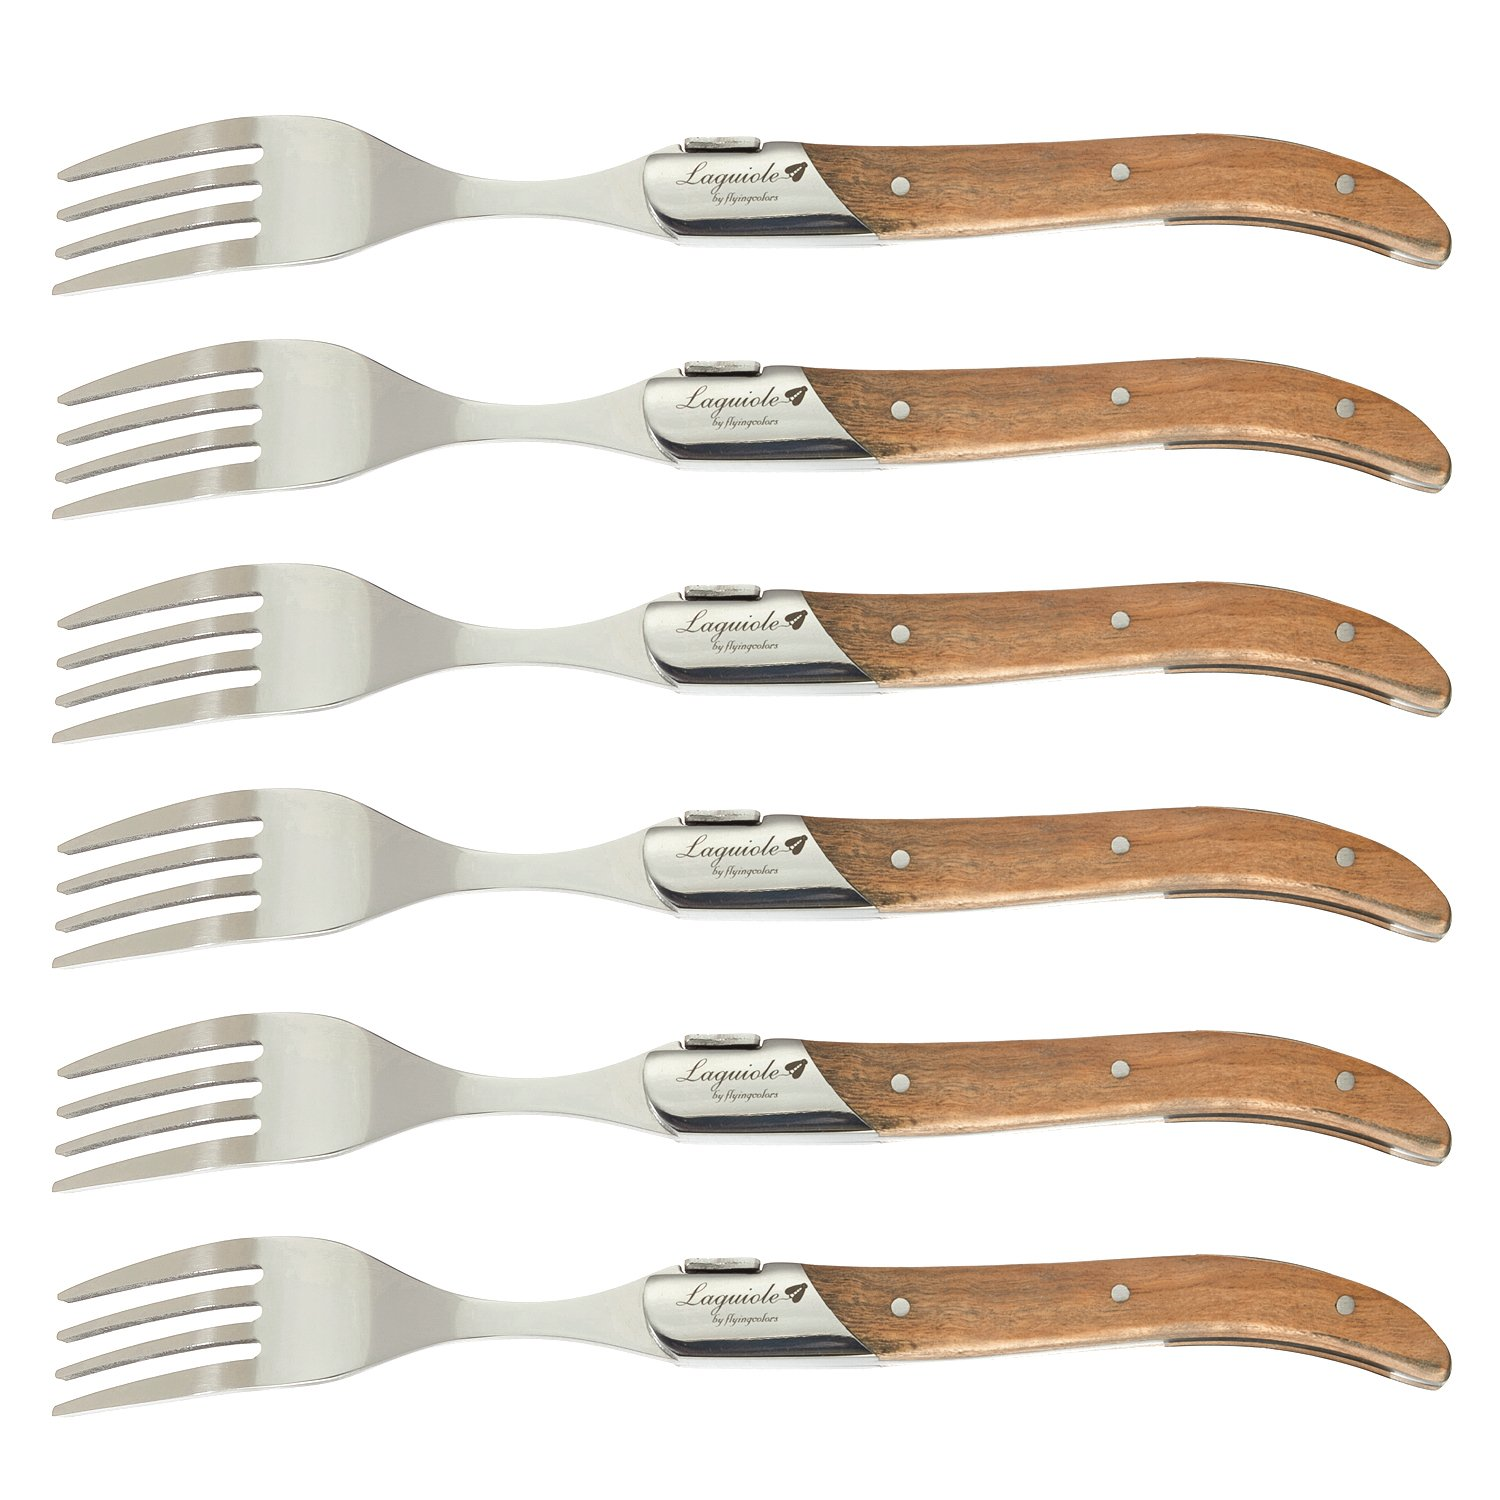 FlyingColors Laguiole Fork. Stainless Steel Forks Set, Olive Wood Handle, with Box, 6 Piece TLS302-FA